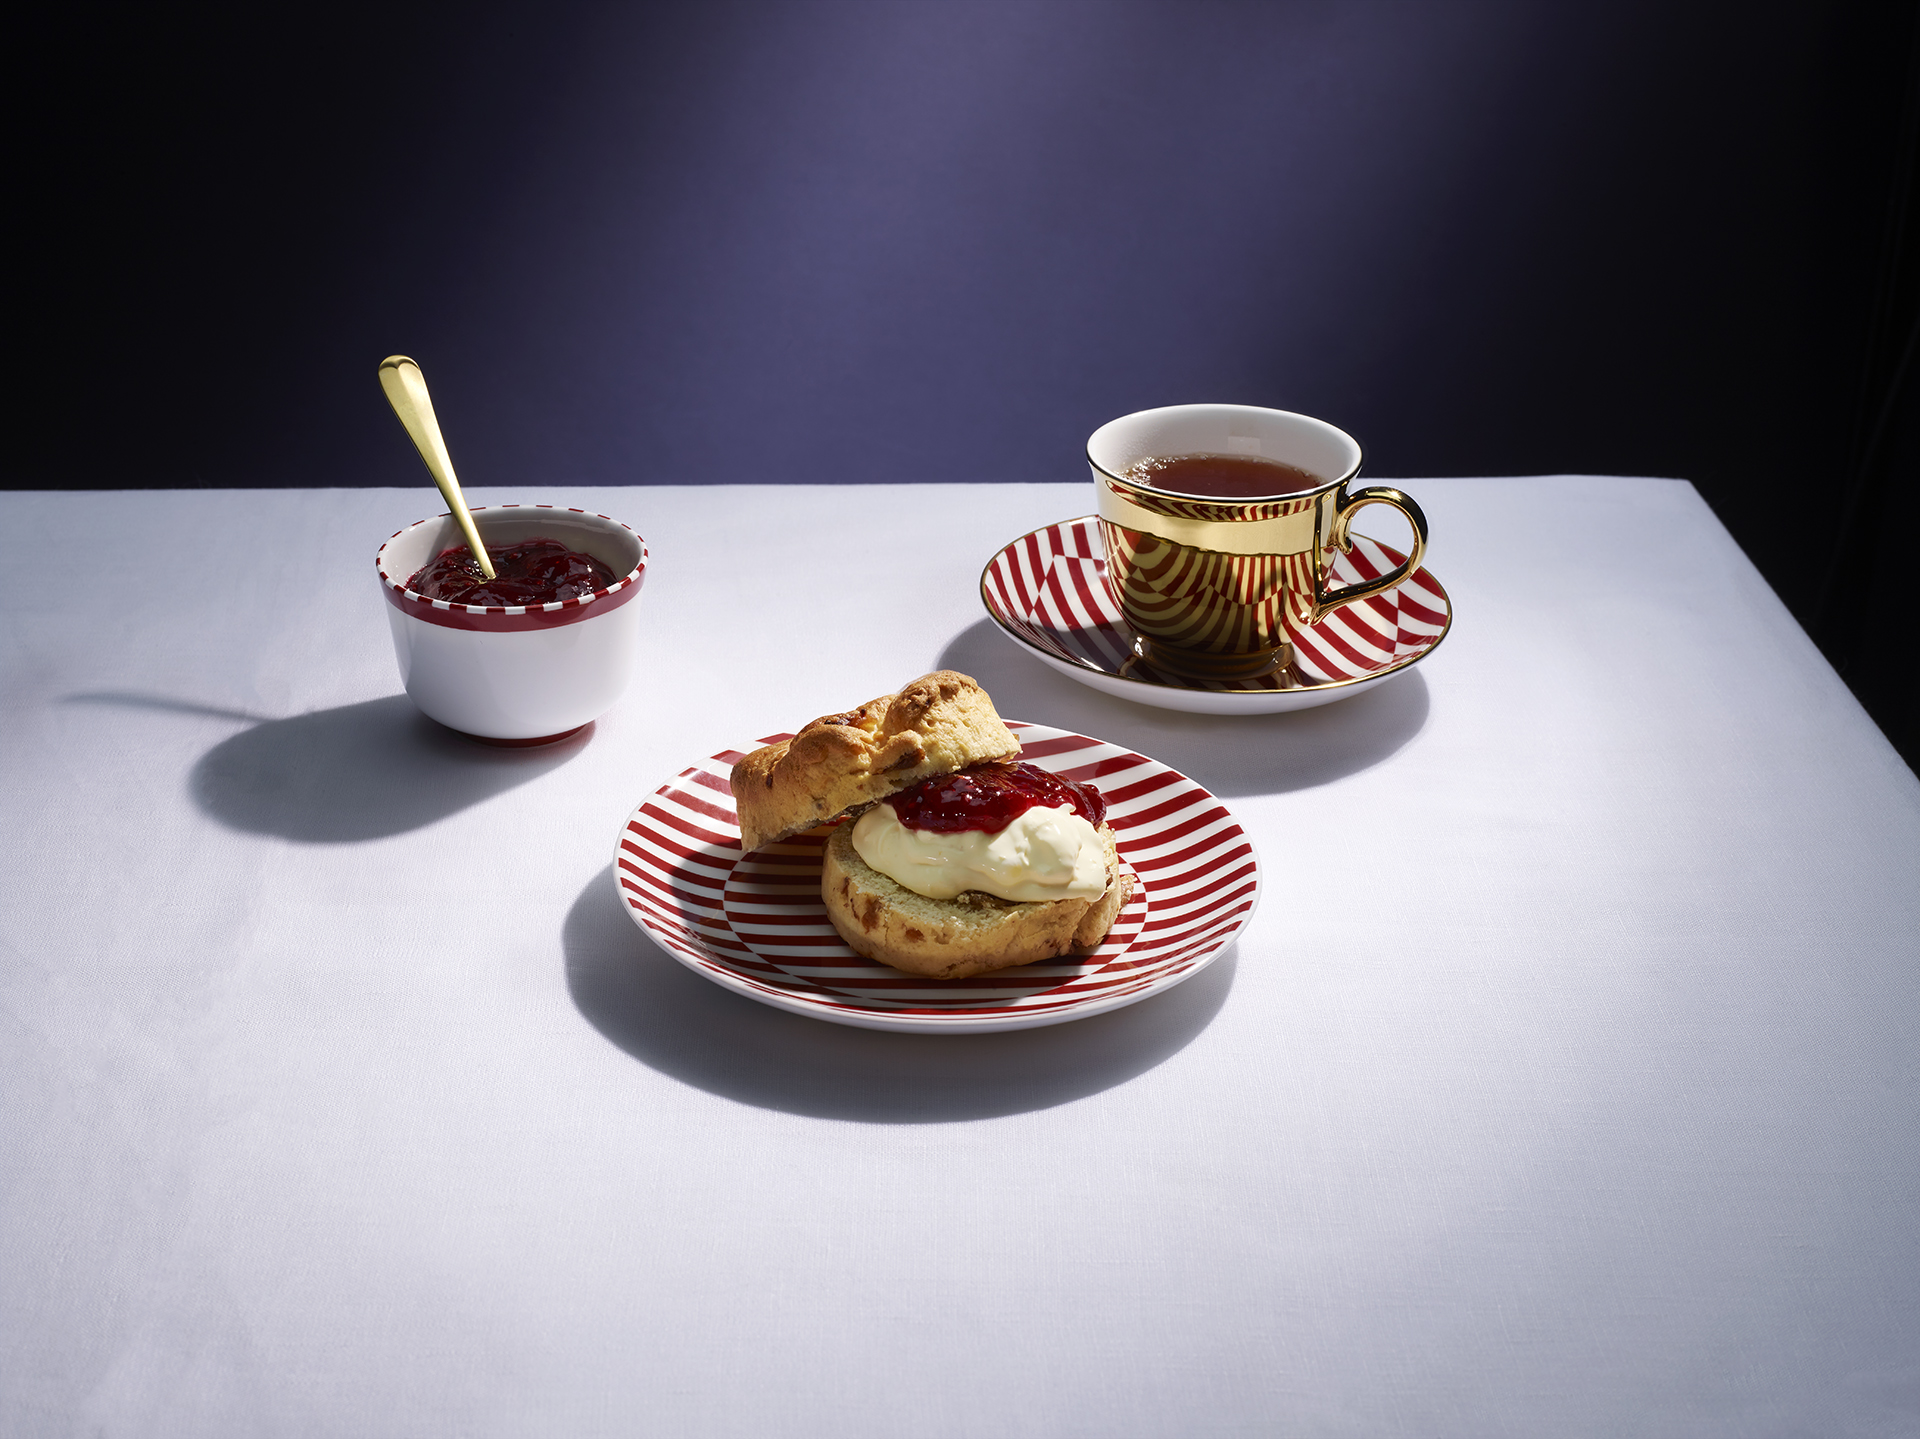 Shot for Richard Brendon Ceramics. This is his Corinthia Red collection, including a plated scone. Food and drink photography by Lauren Mclean